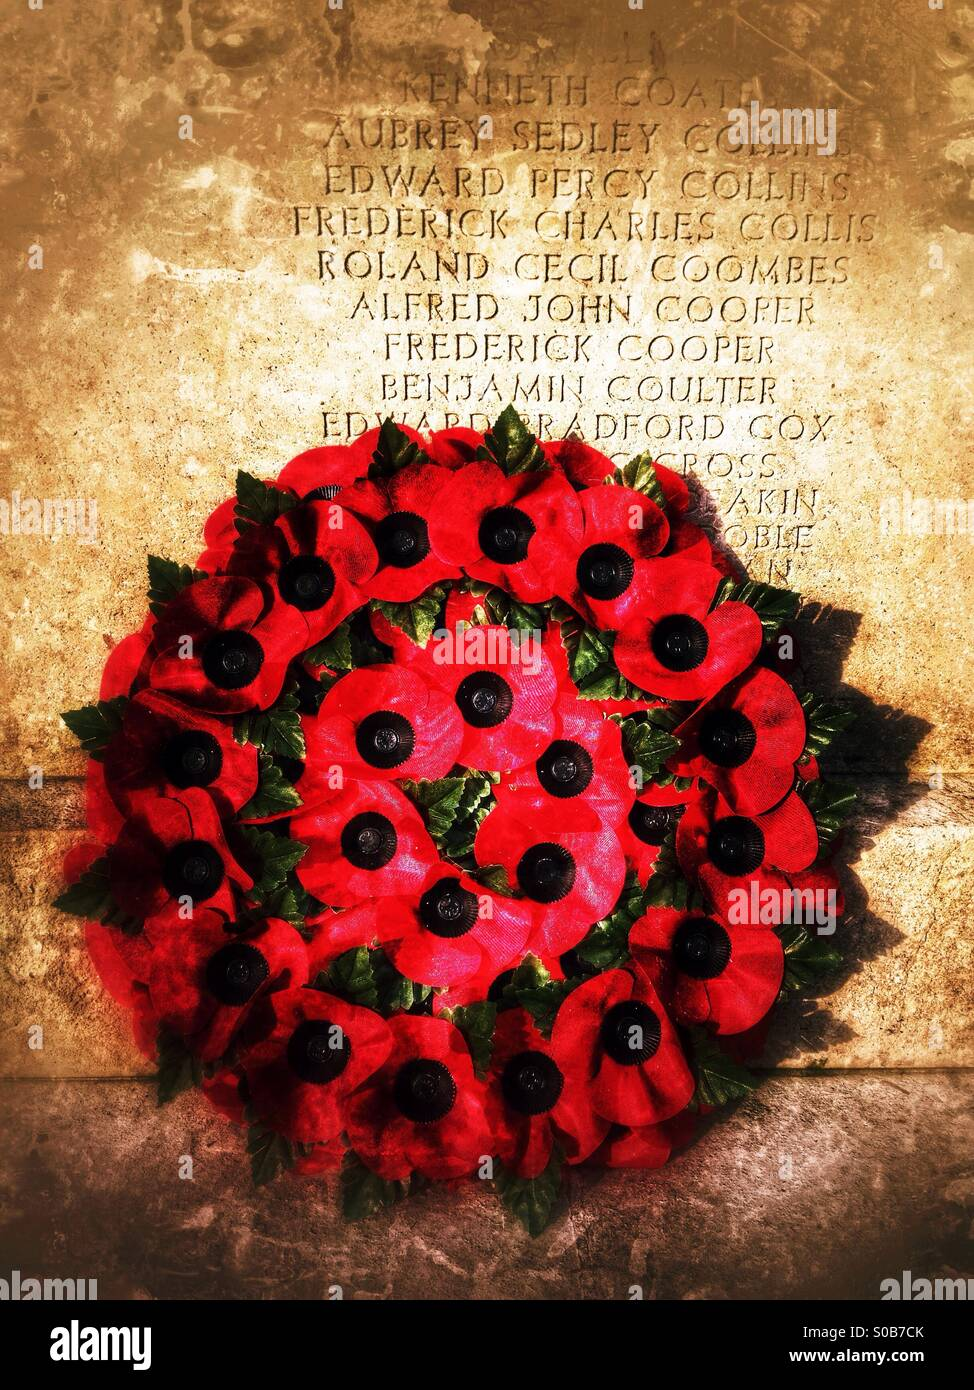 Wreath of red poppies on a war memorial. Guildford, Surrey, England. - Stock Image